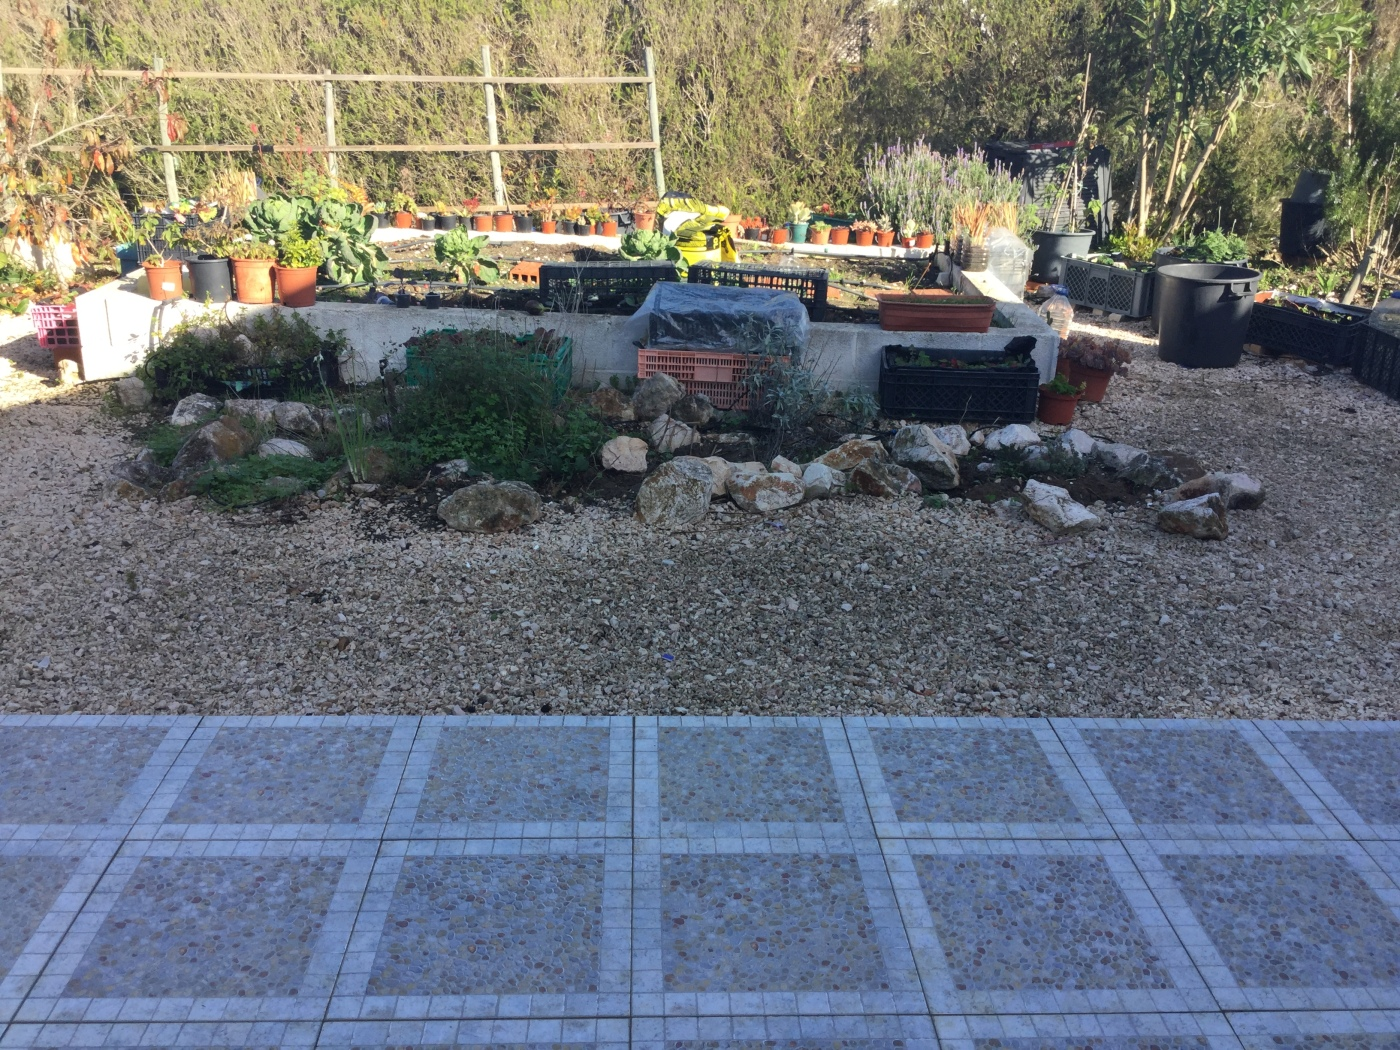 Gardening 'To Do' List – Six Projects for 2019 – Piglet in